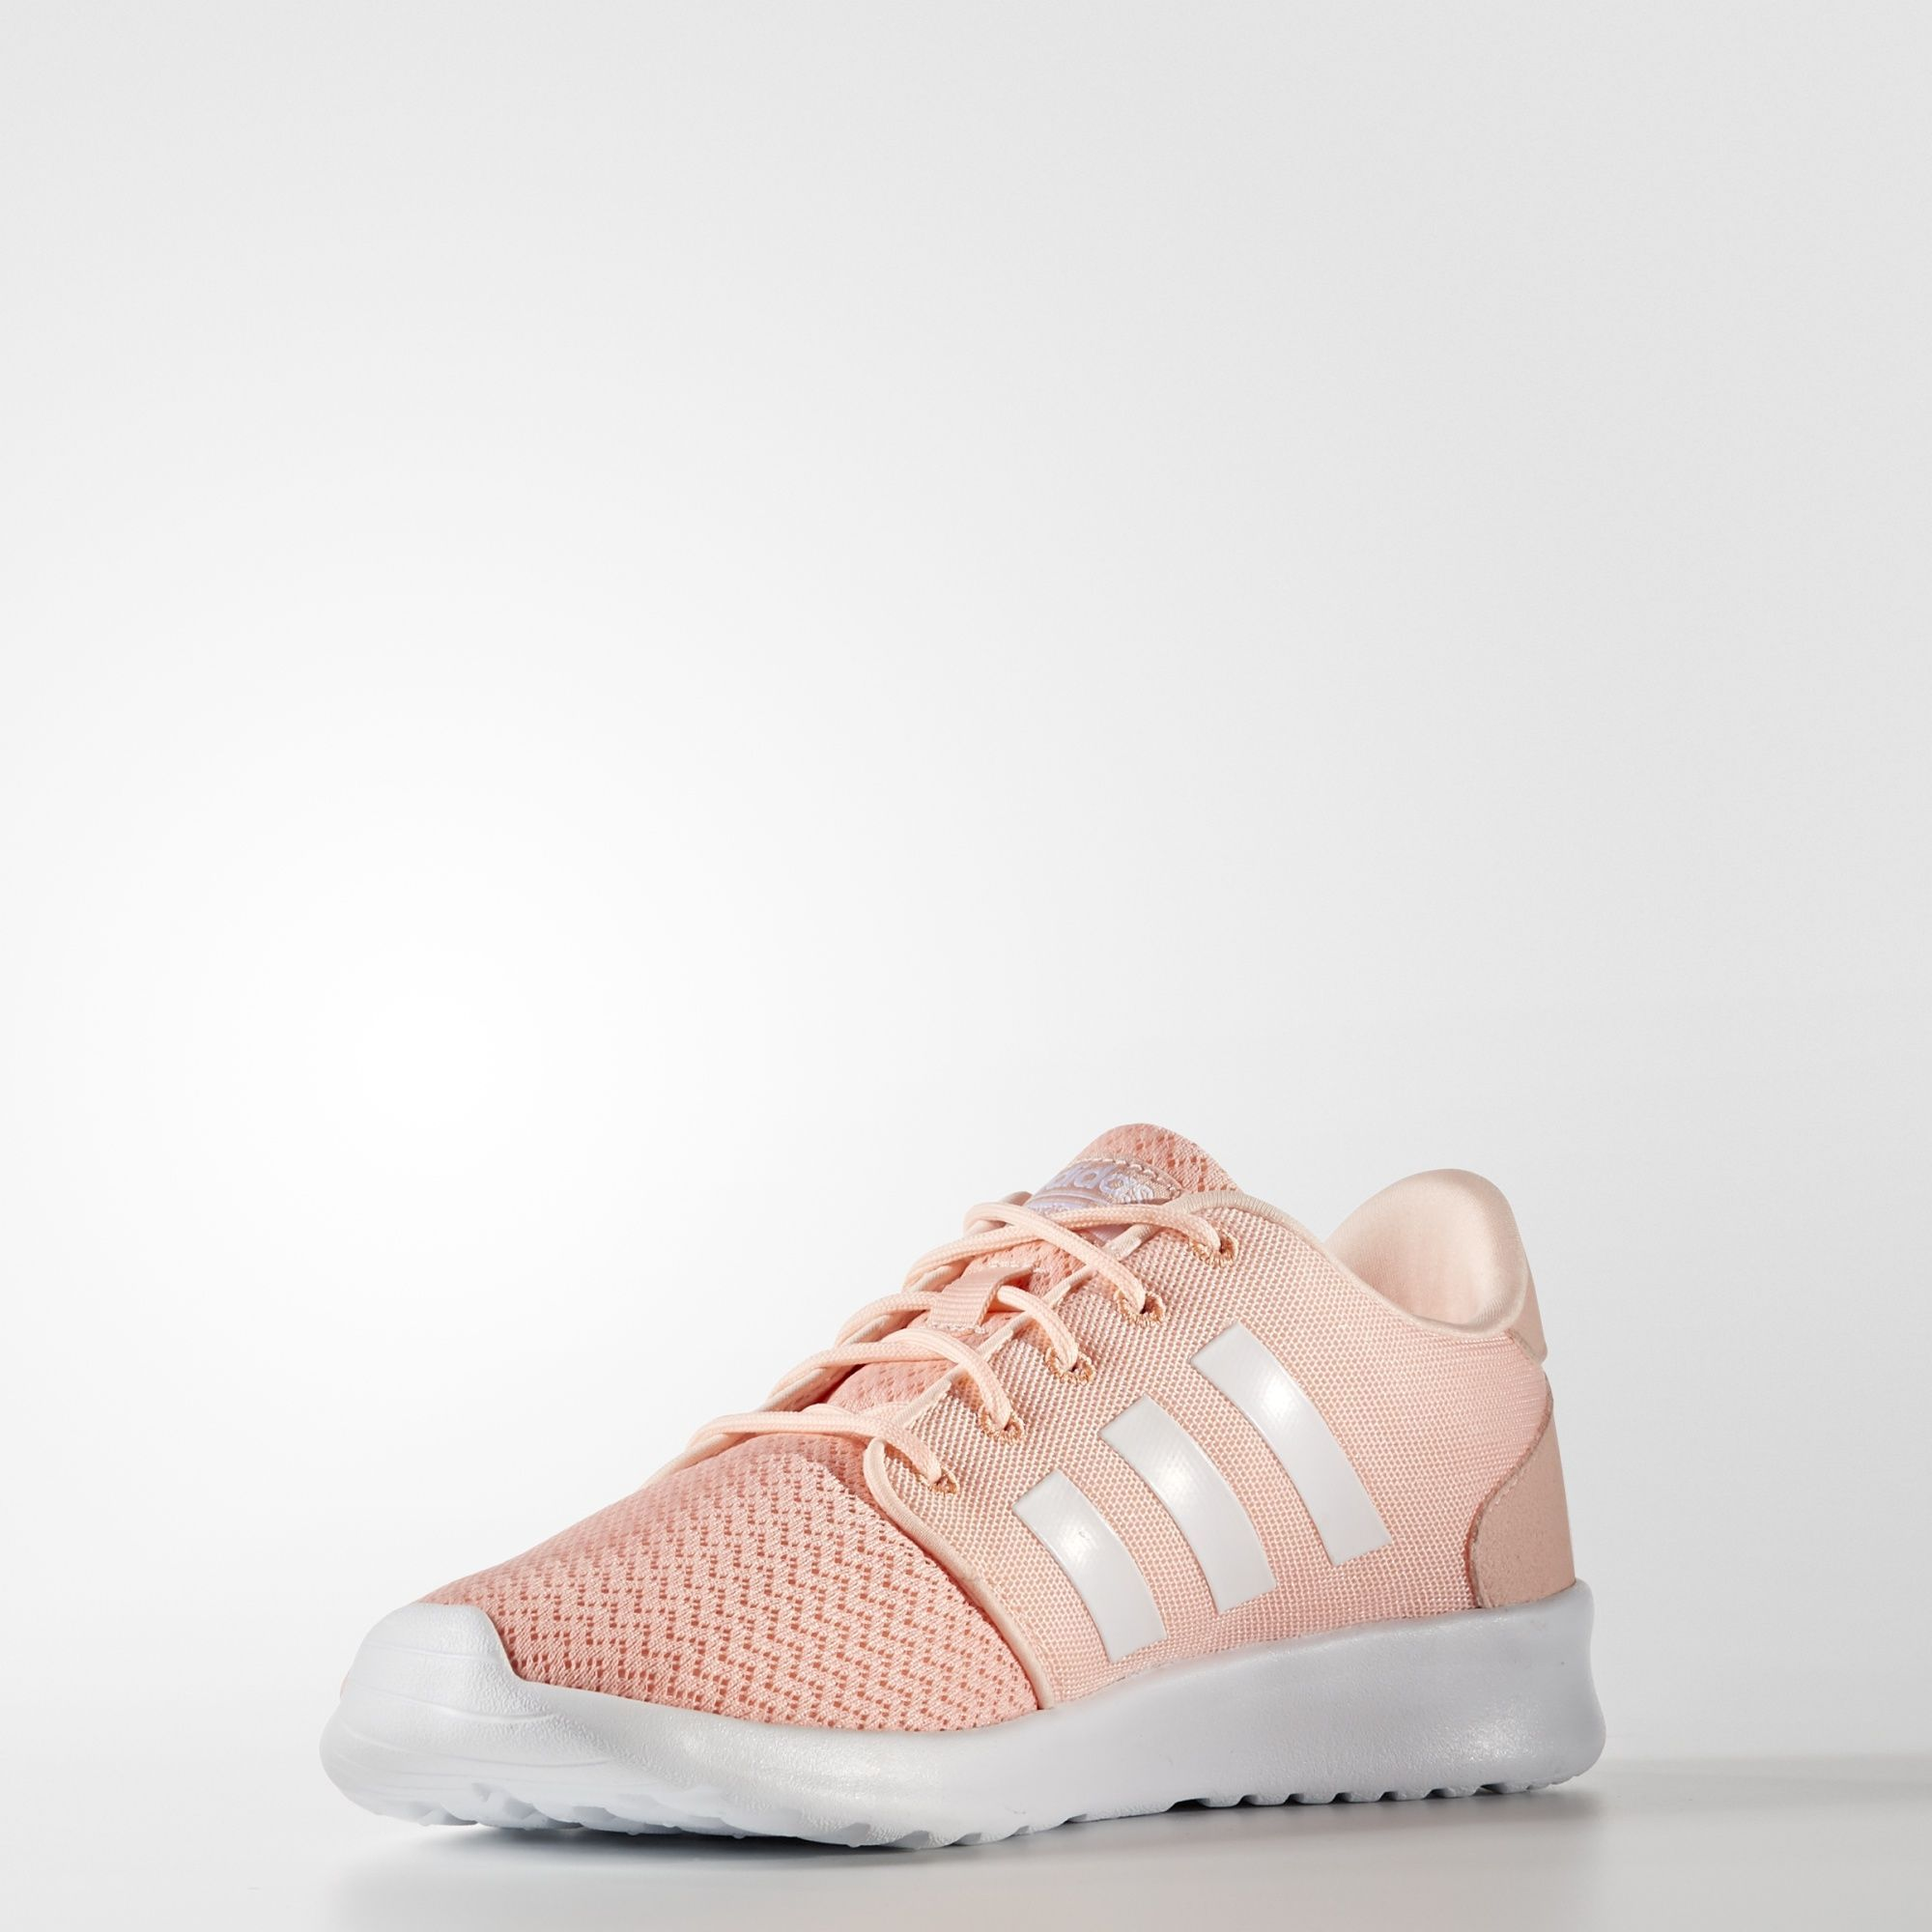 adidas - Cloudfoam QT Racer Shoes